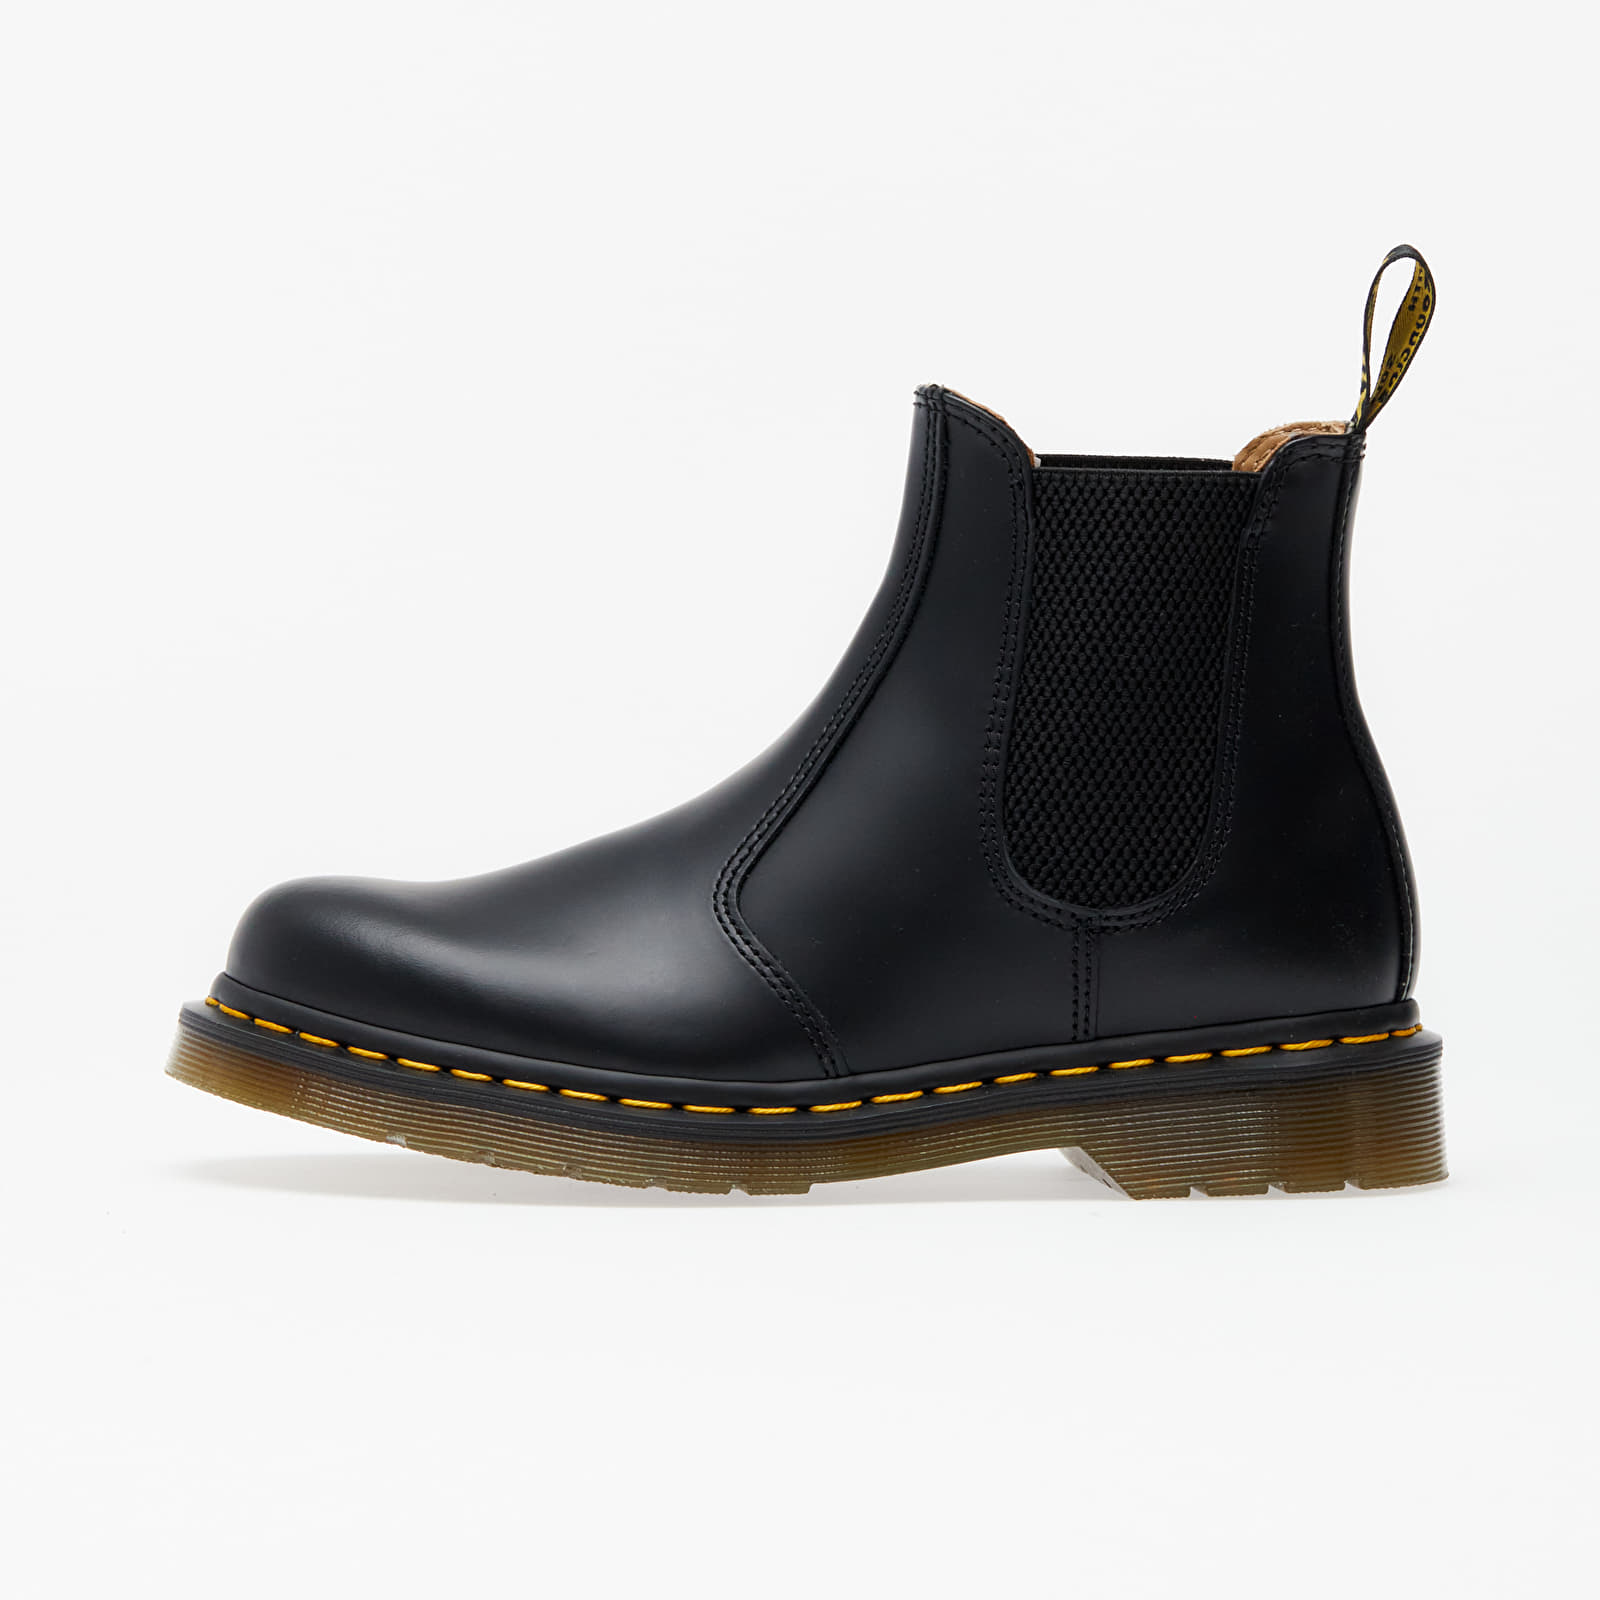 Chaussures et baskets homme Dr. Martens 2976 Smooth Black